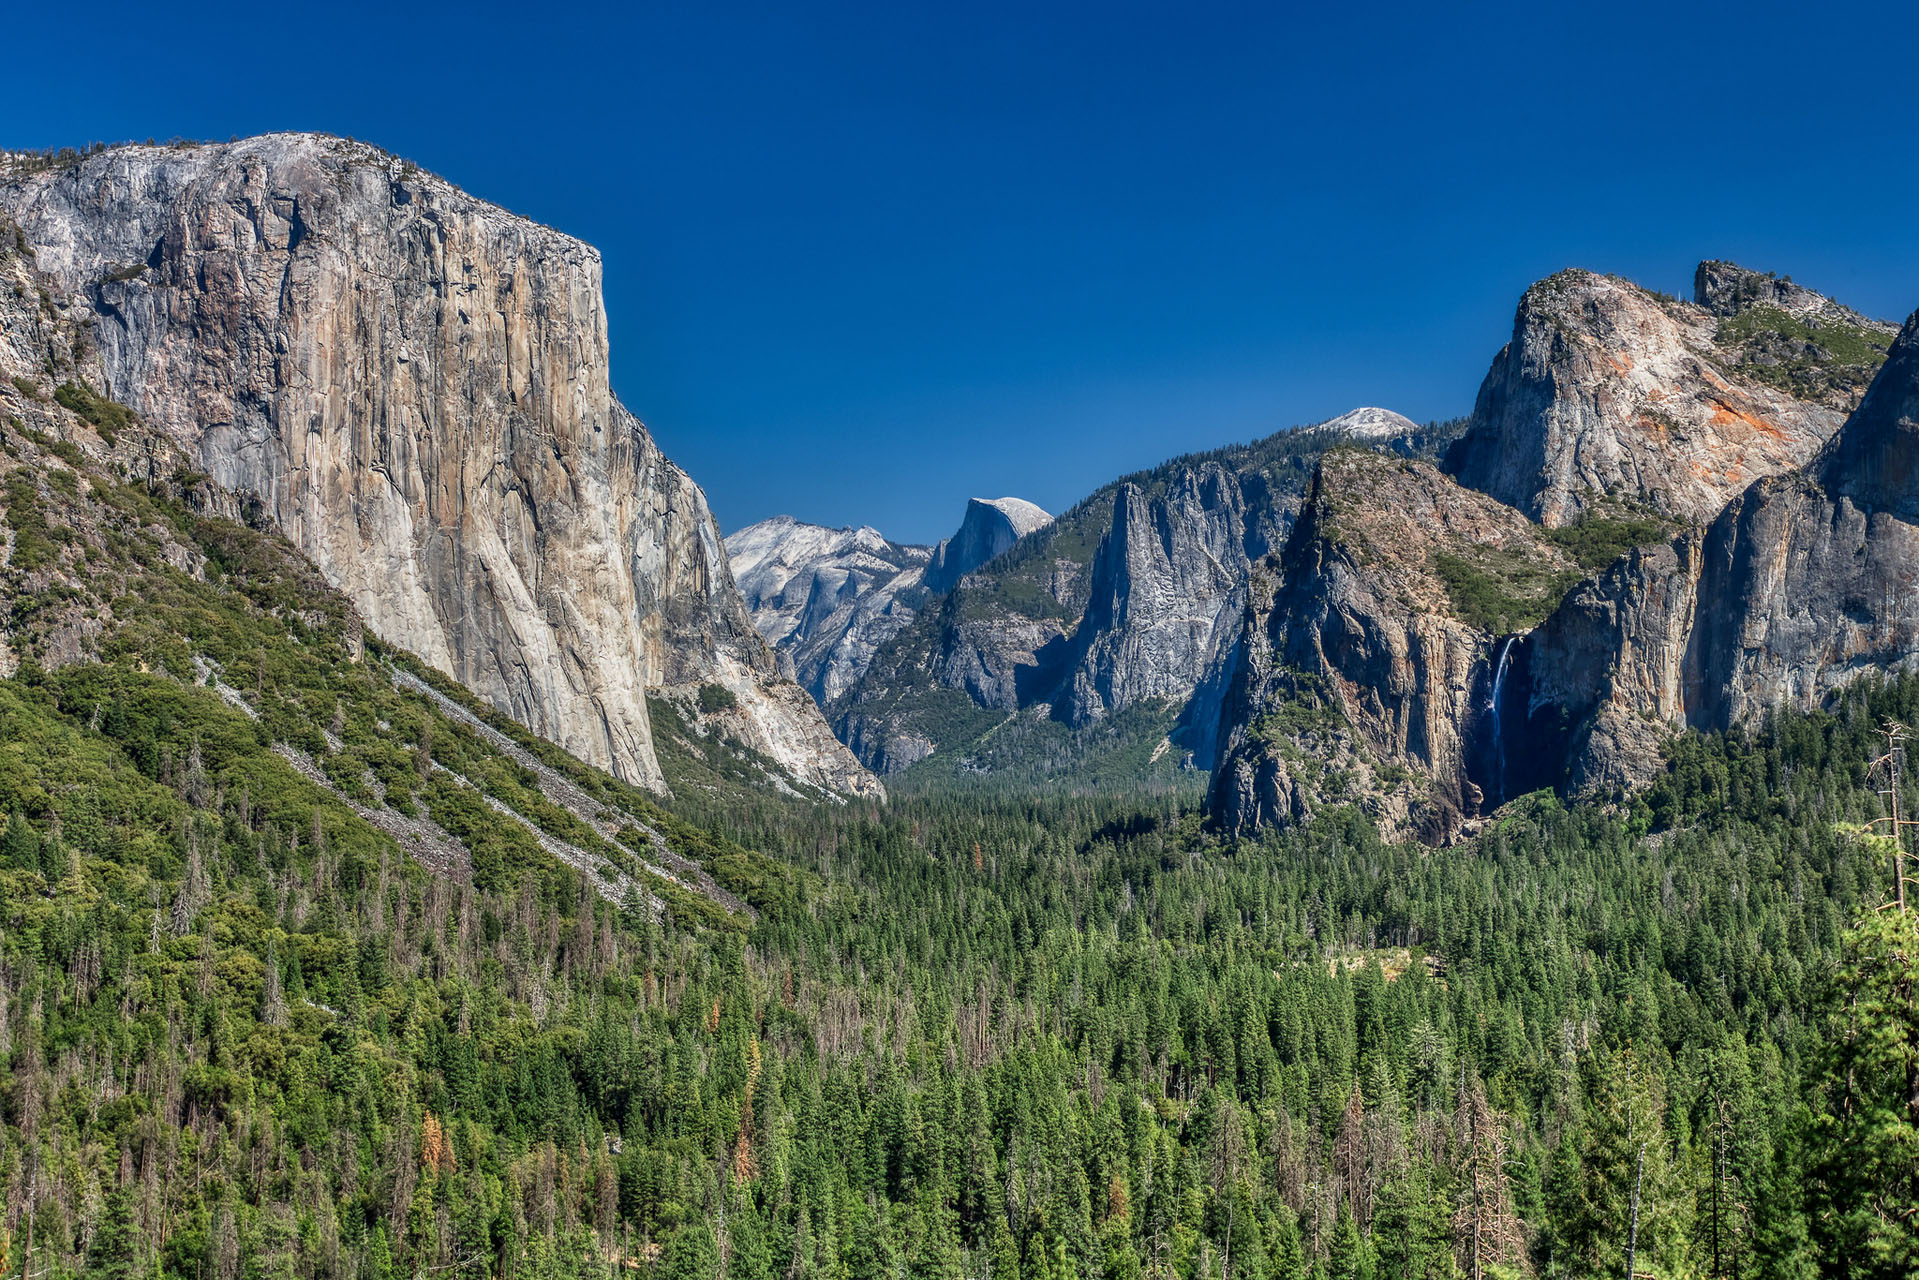 Yosemite National Park: Taking Photos of Half Dome and El Capitan